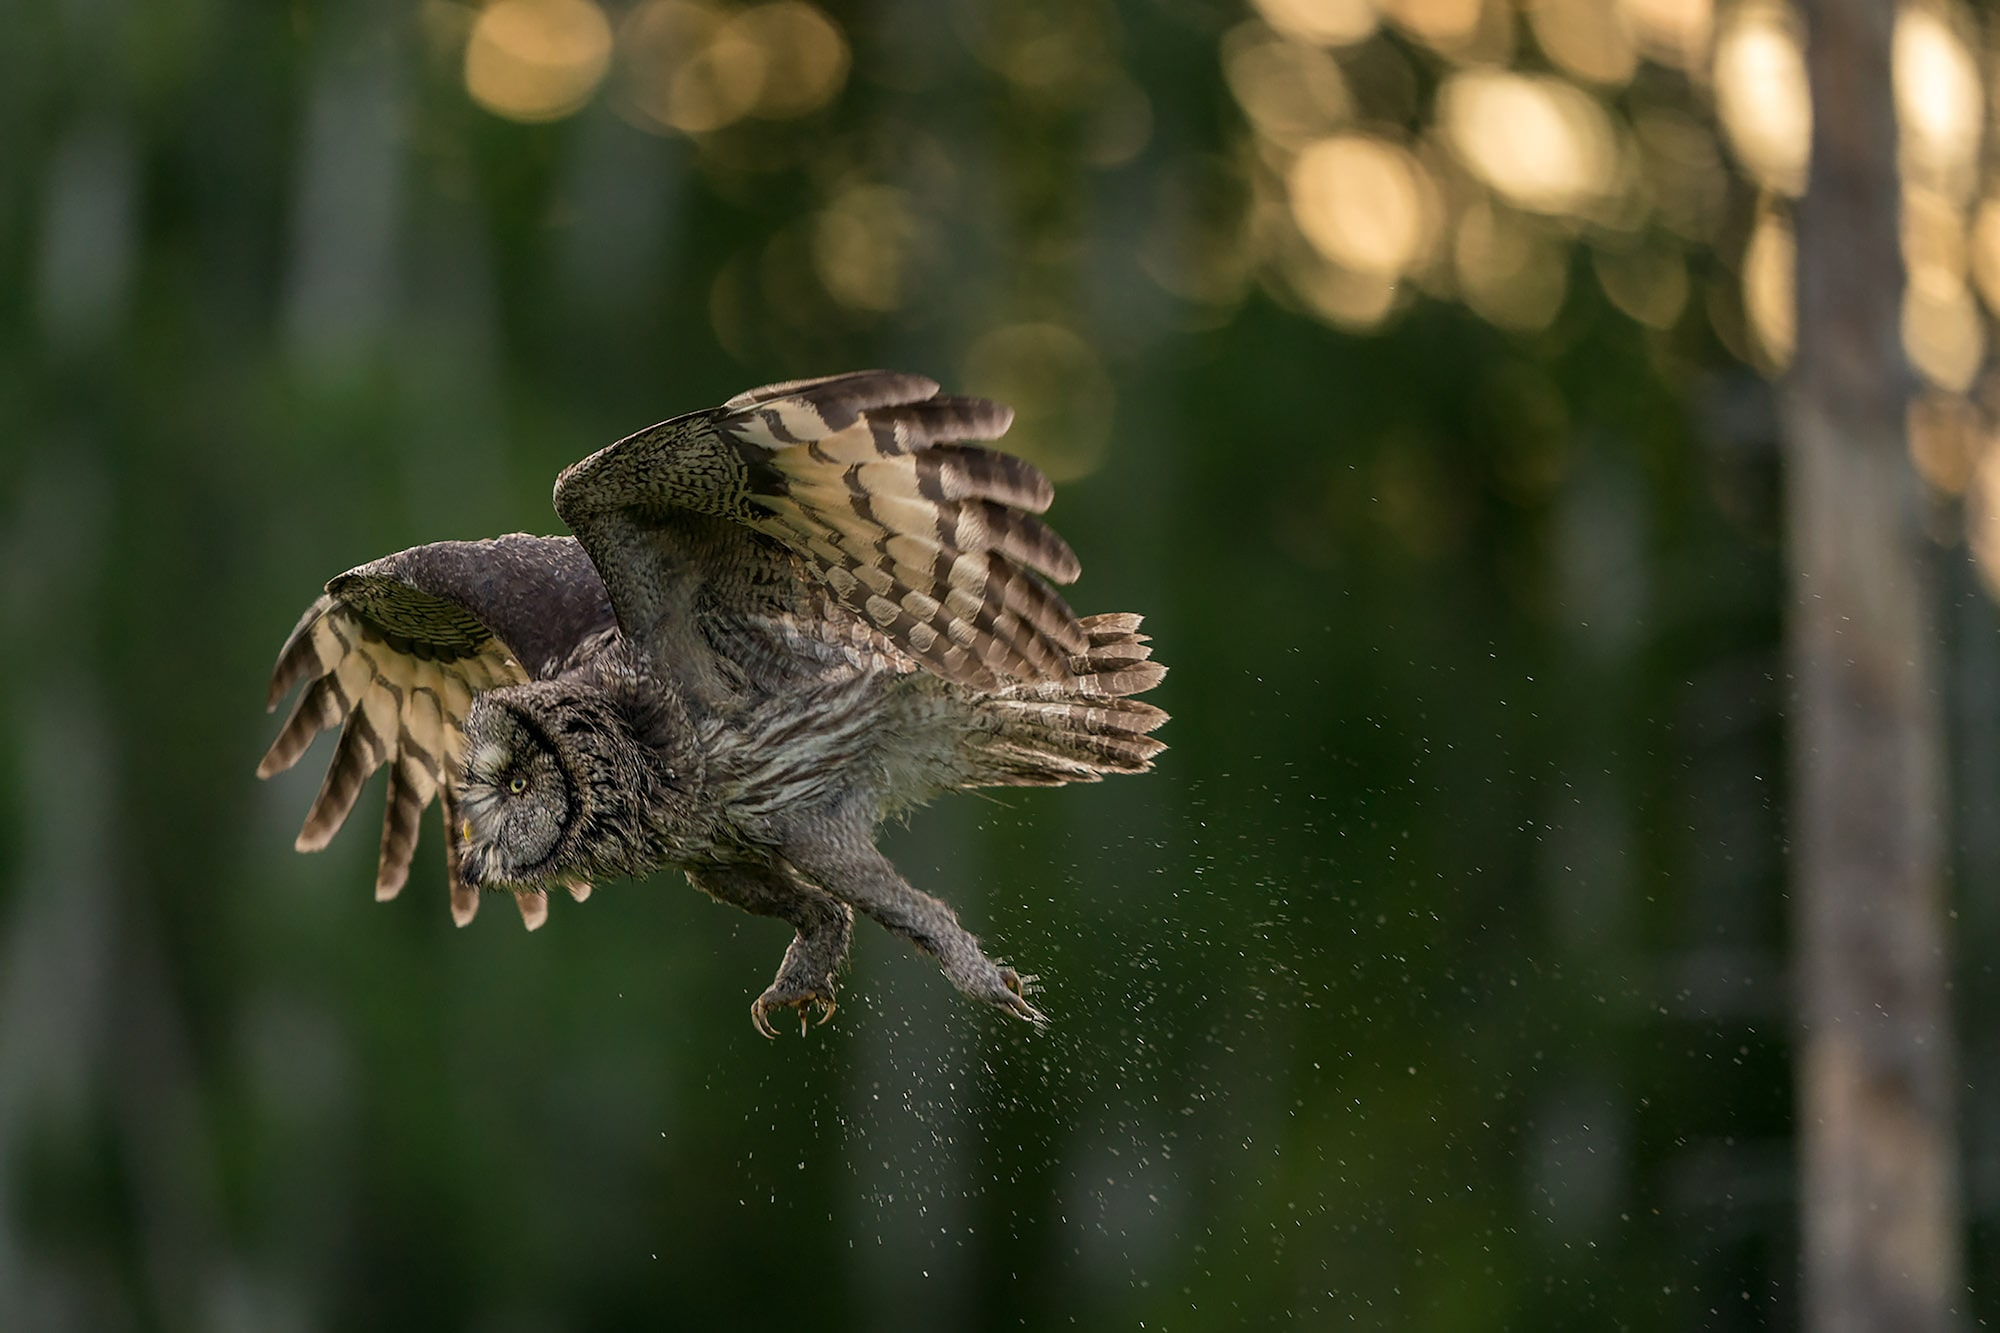 floris smeets sony alpha 9 grey owl takes flight with water droplets spraying from its body